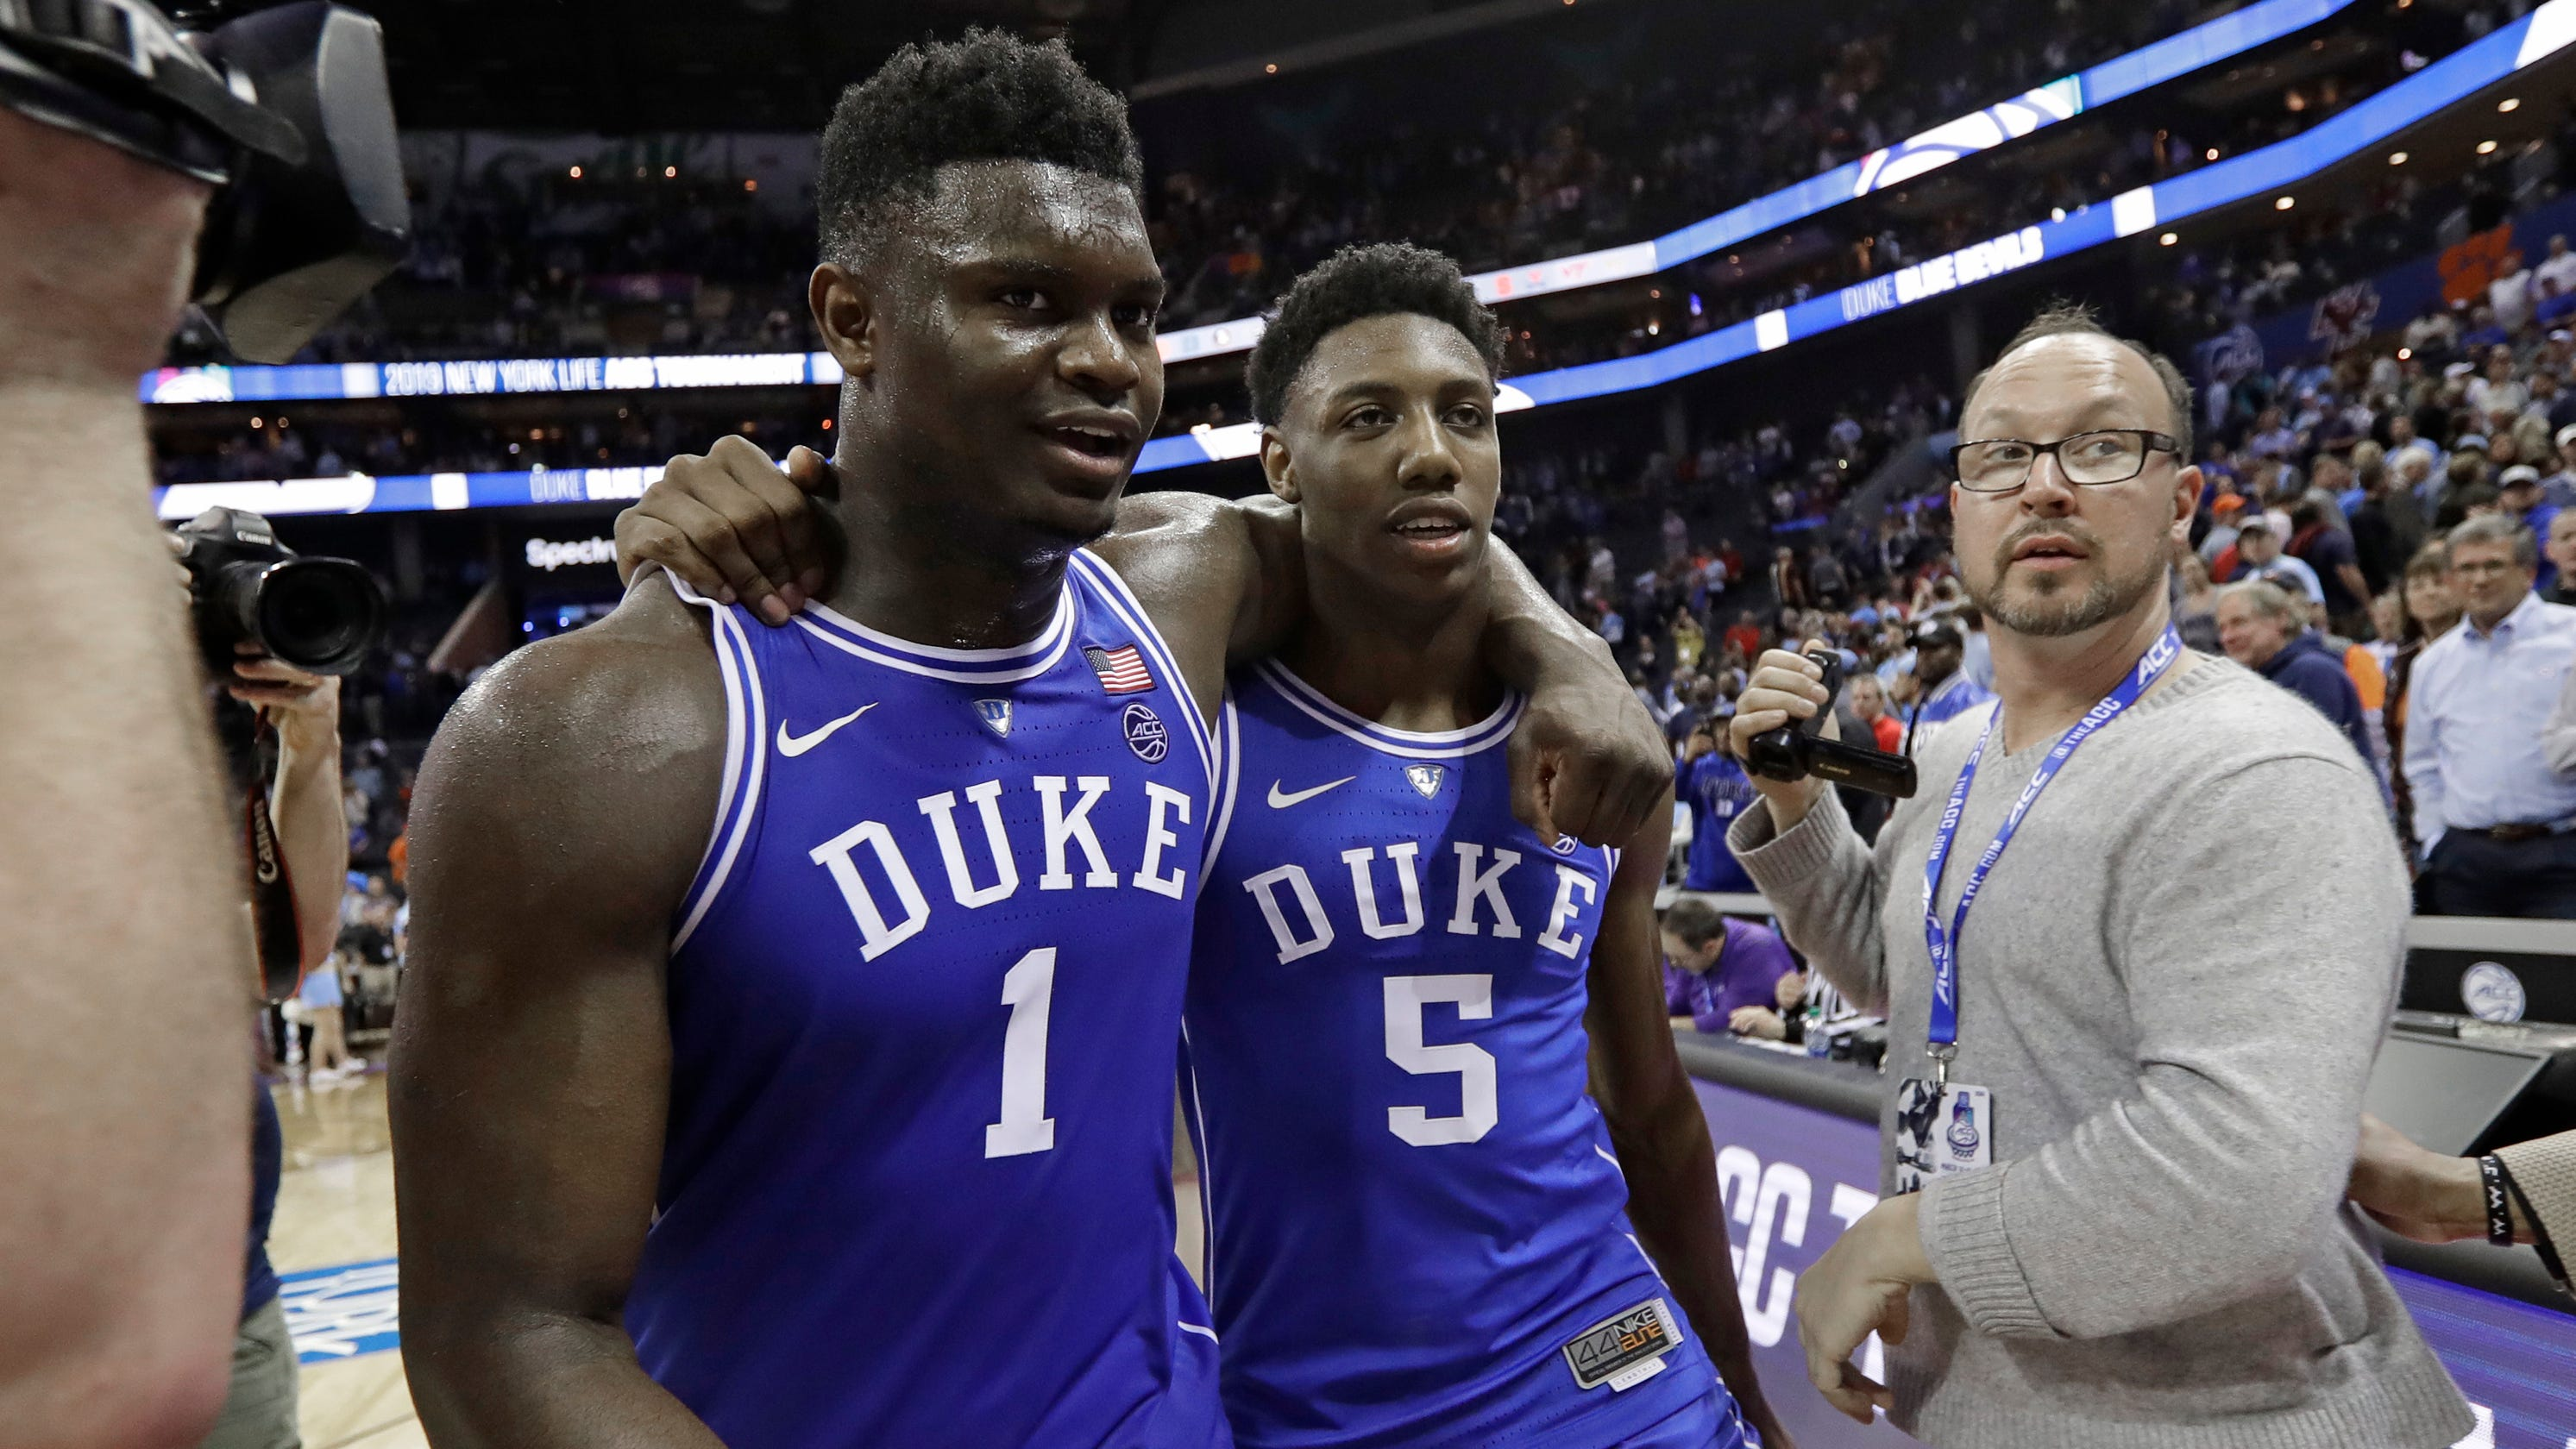 TML: March Madness 2019, UC Basketball, Vontaze Burfict